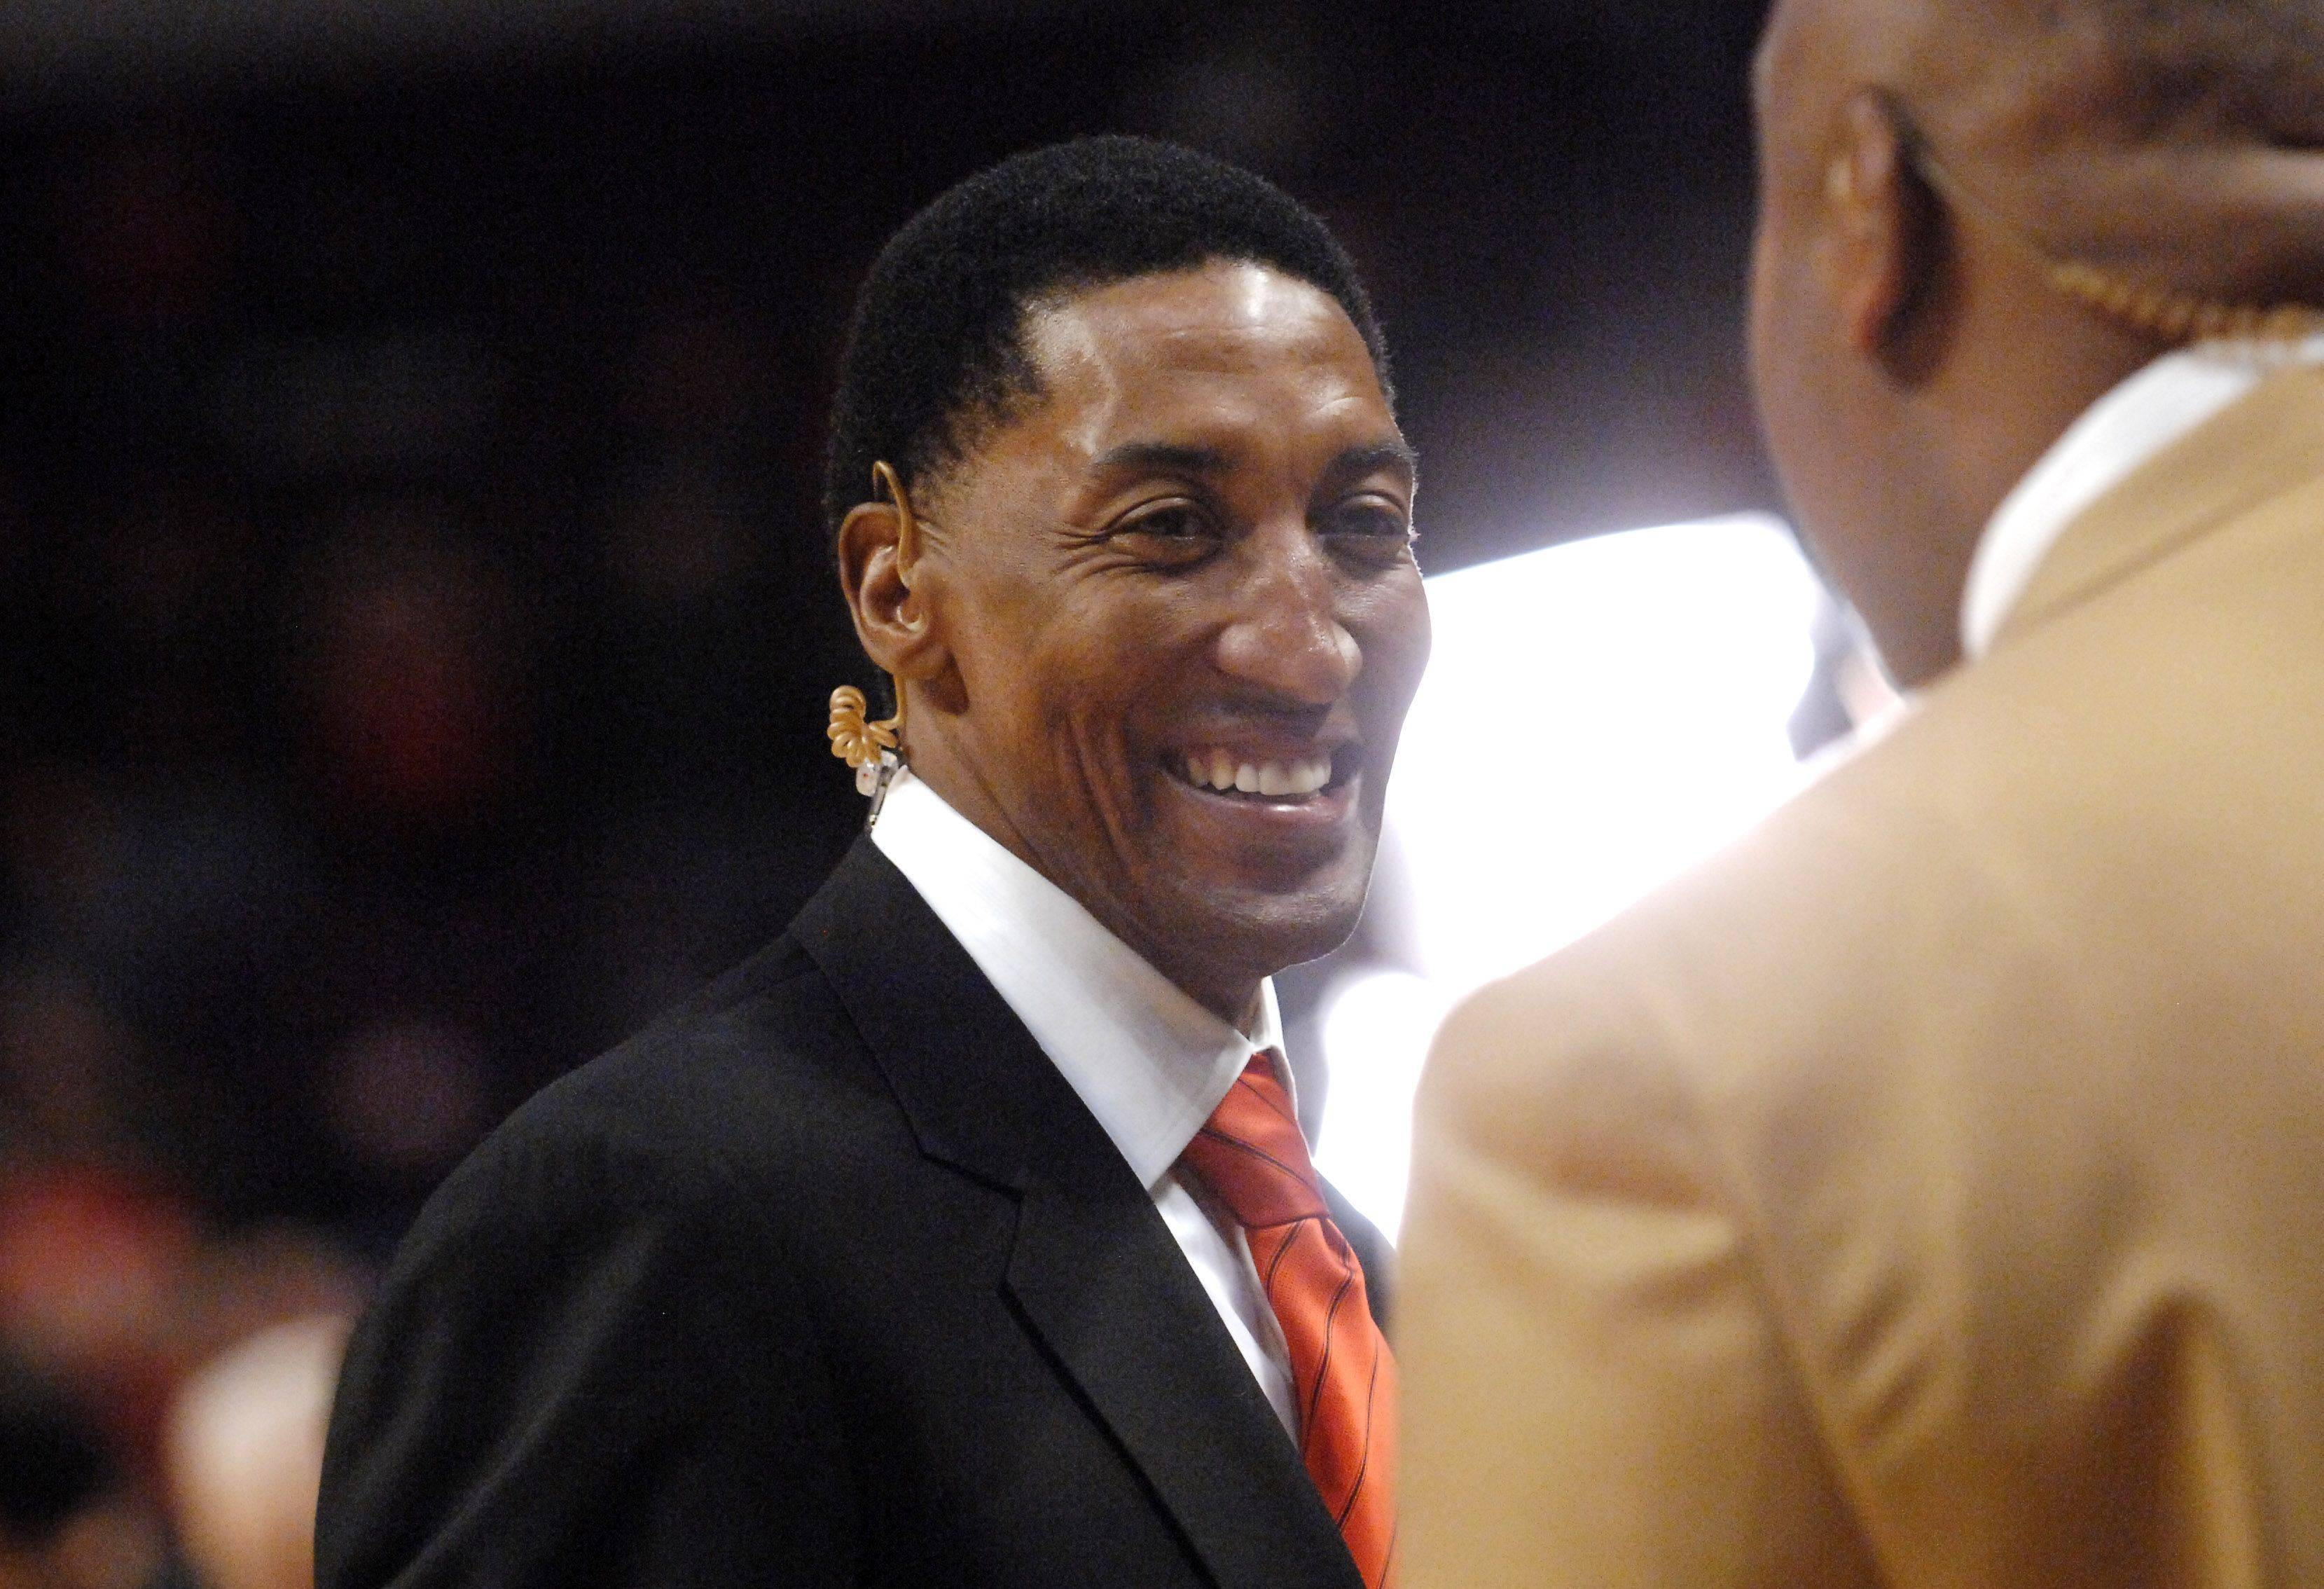 Former Bull Scottie Pippen chats with former teammate Stacy King before Game One of the NBA Eastern Conference Quarterfinals Saturday at the United Center in Chicago.